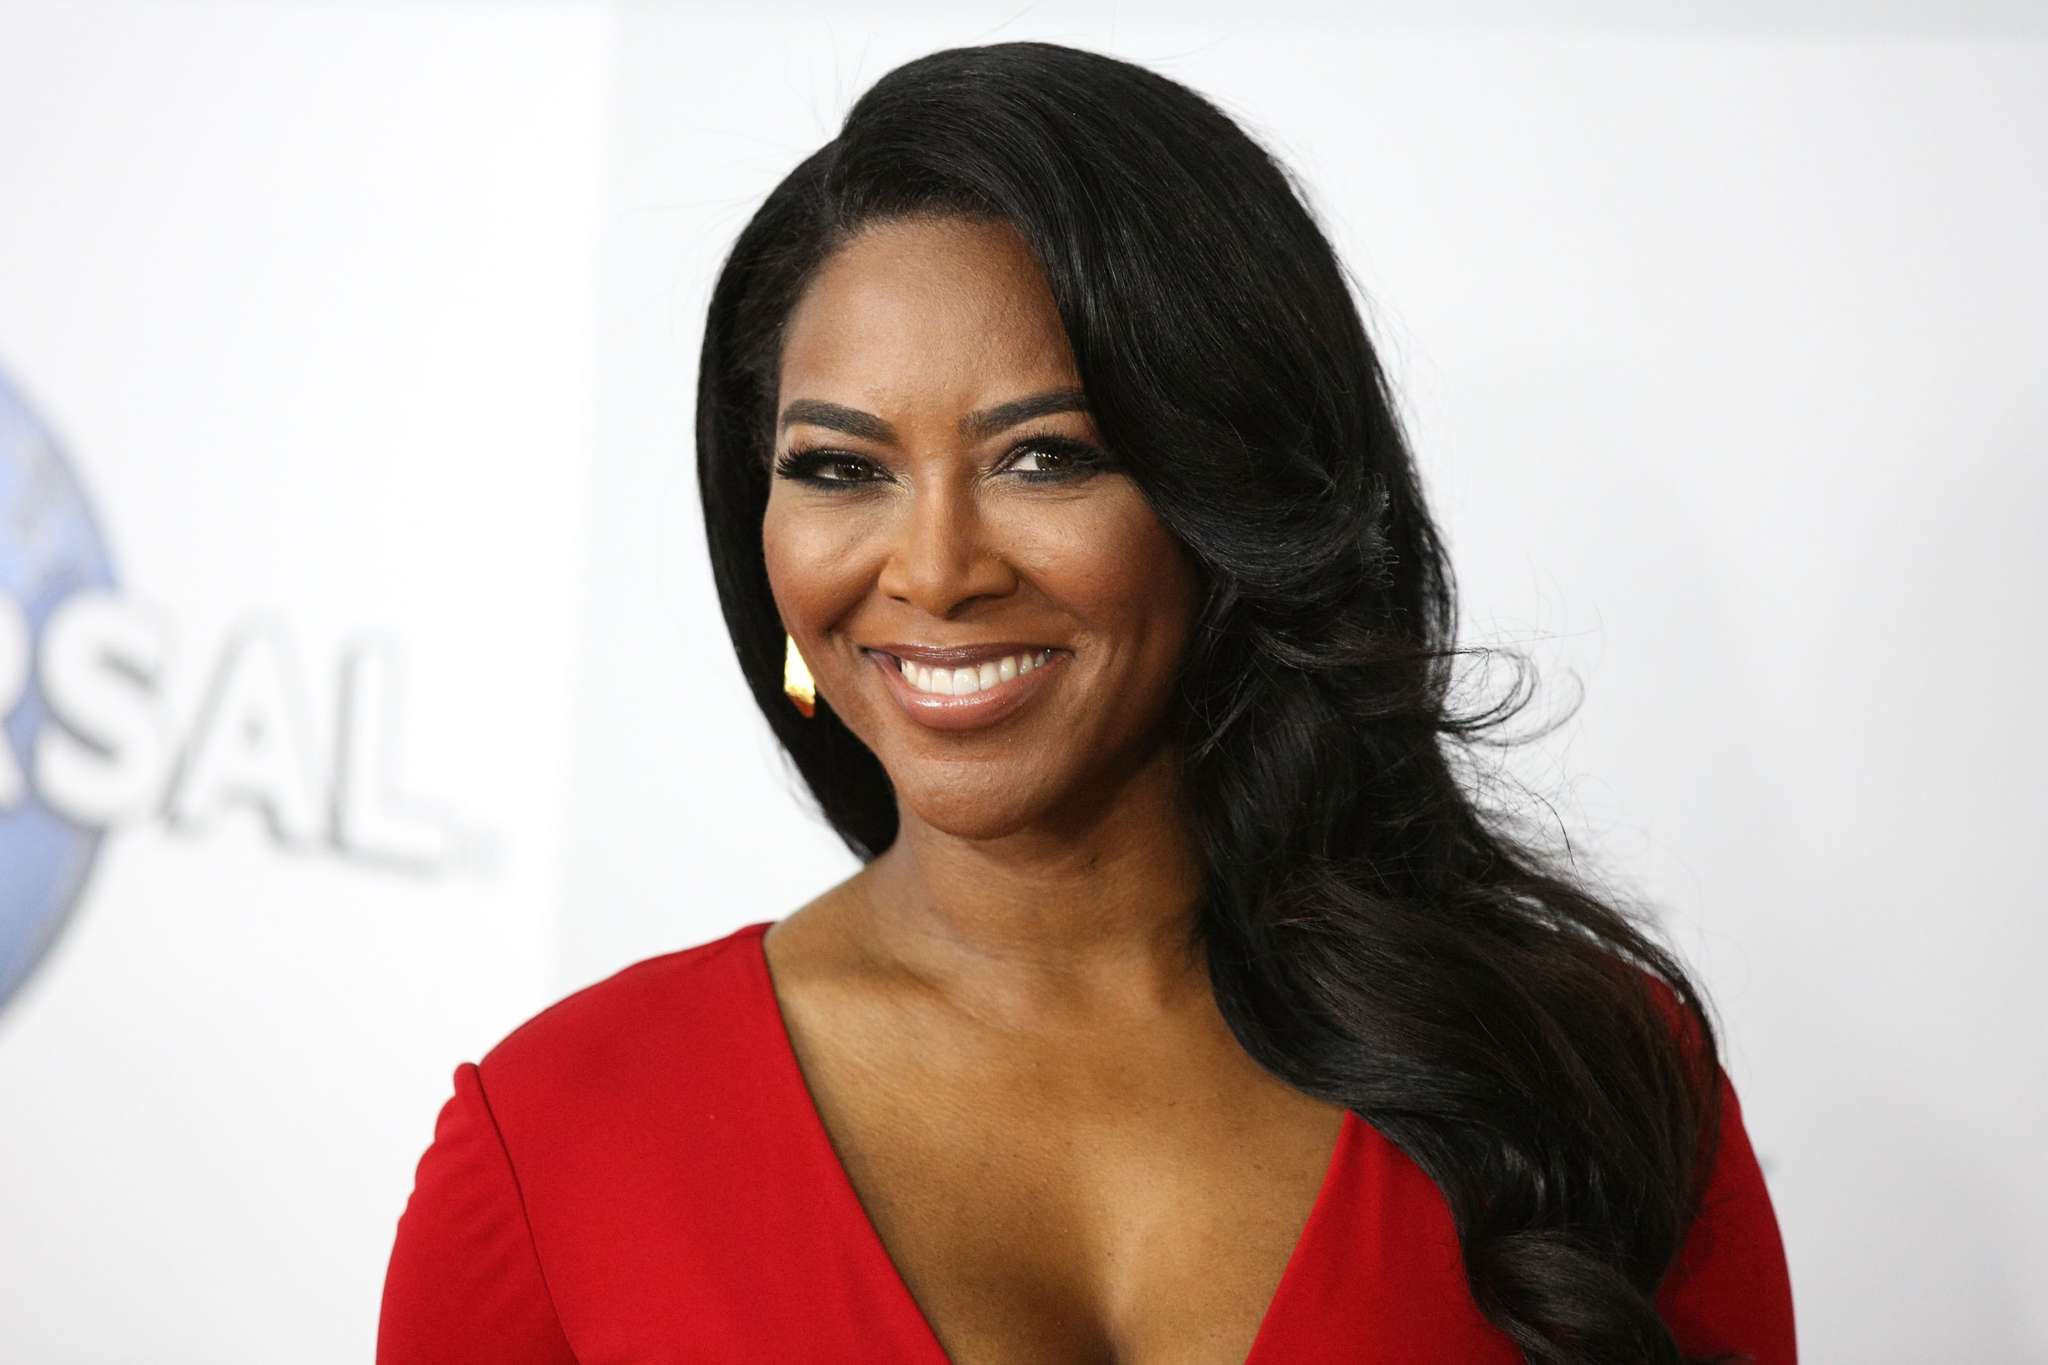 Kenya Moore Shows Off Her Amazing Curves In An All-White Outfit